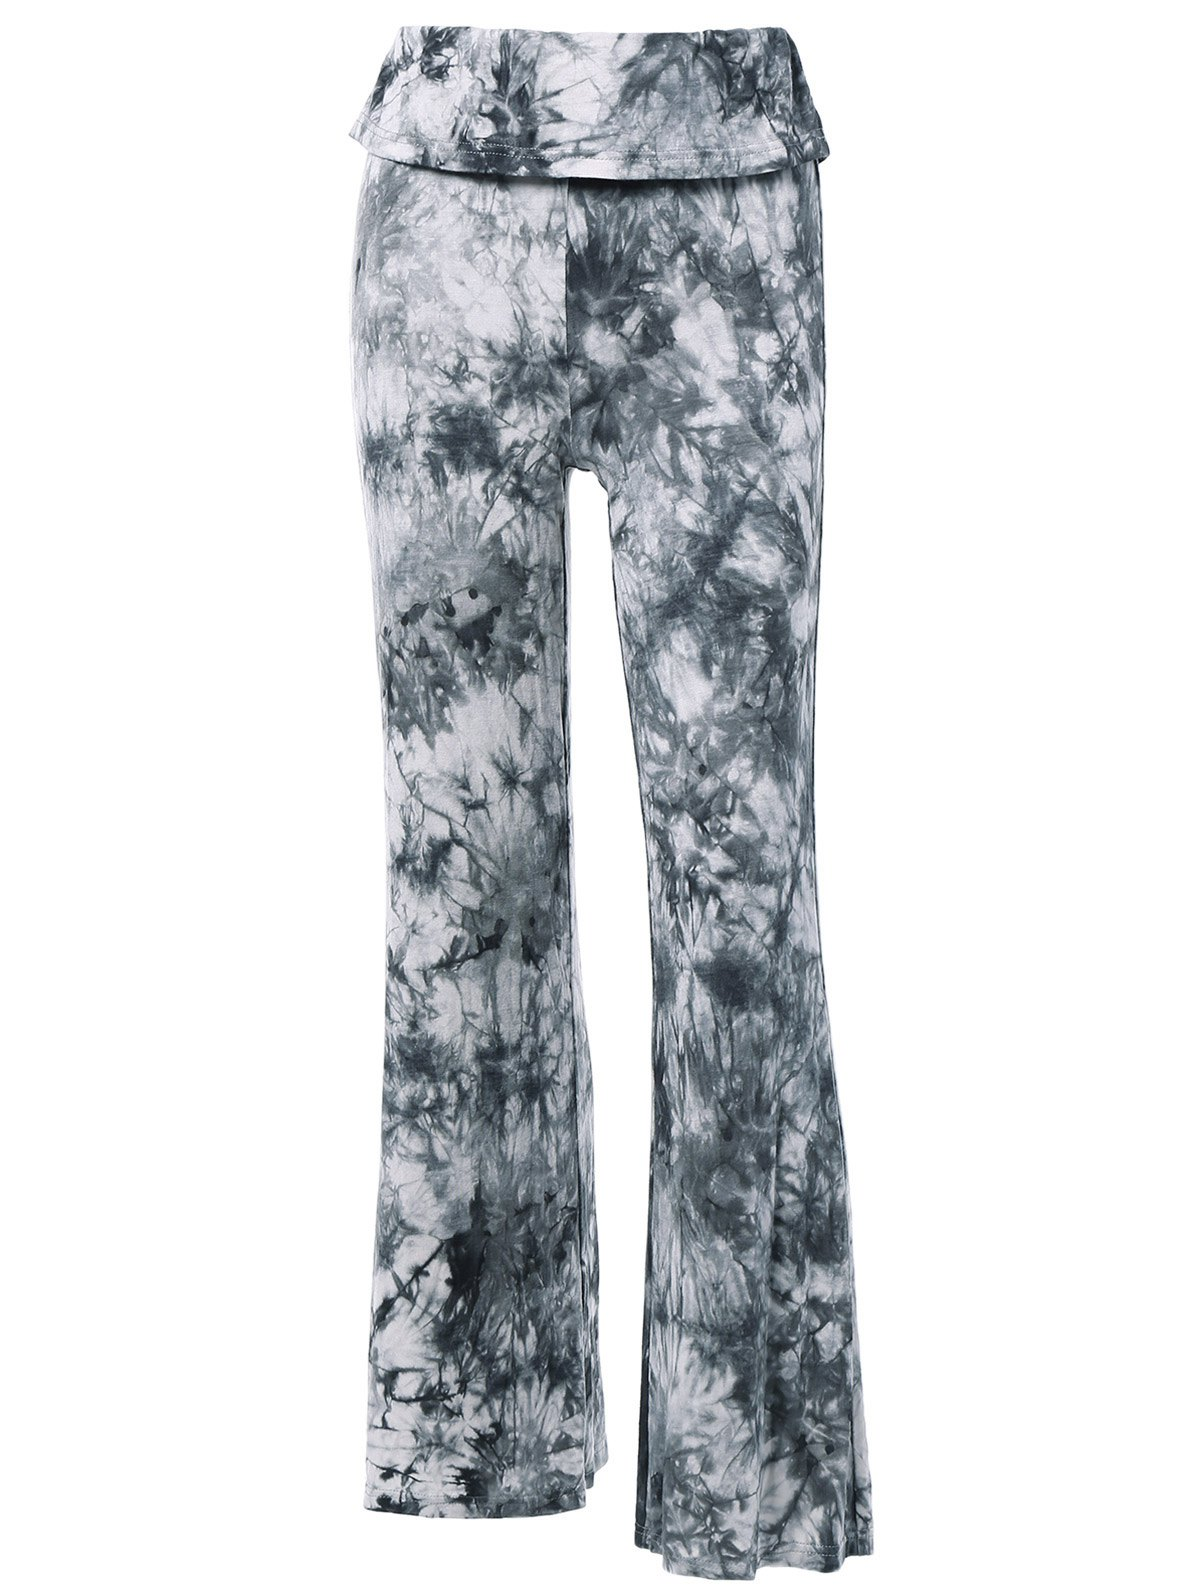 Fashionable Women's High Waist Tie Dye Loose-Fitting Pants - BLACK GREY L